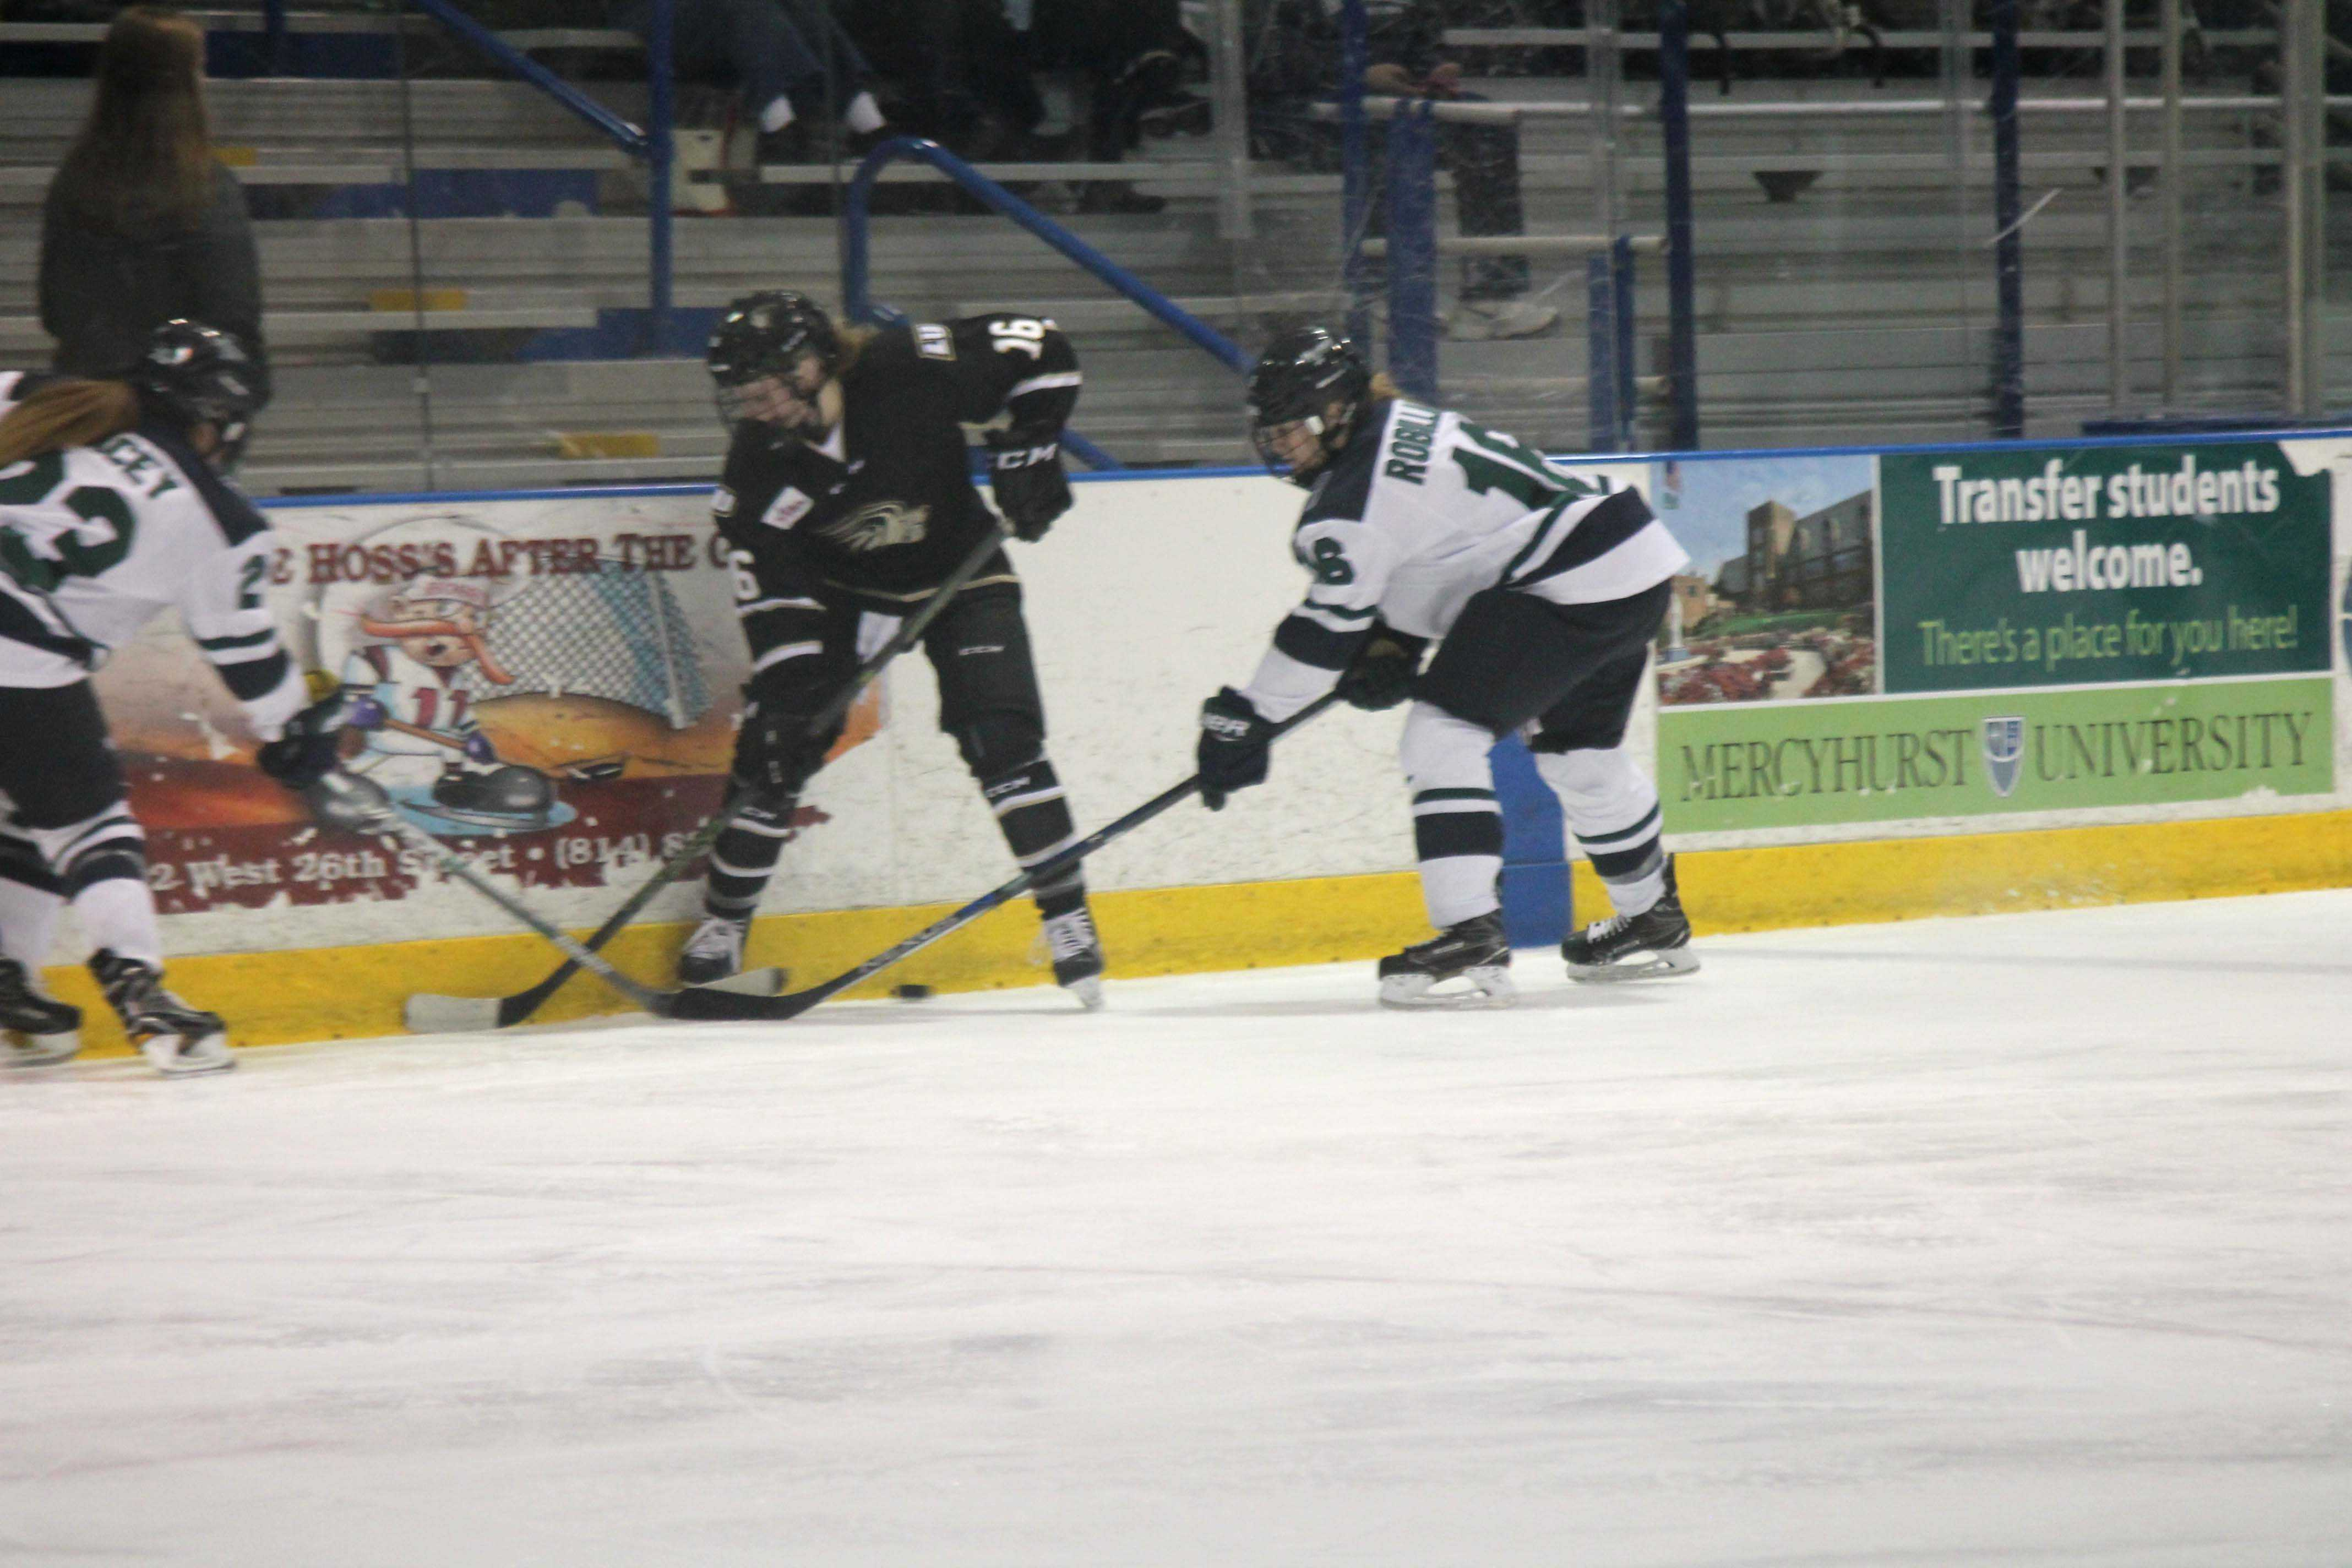 Mercyhurst women's ice hockey team came off victorious as they faced Lindenwood University. The Lakers are still reaching for a top-three seed in the CHA conference tournament.